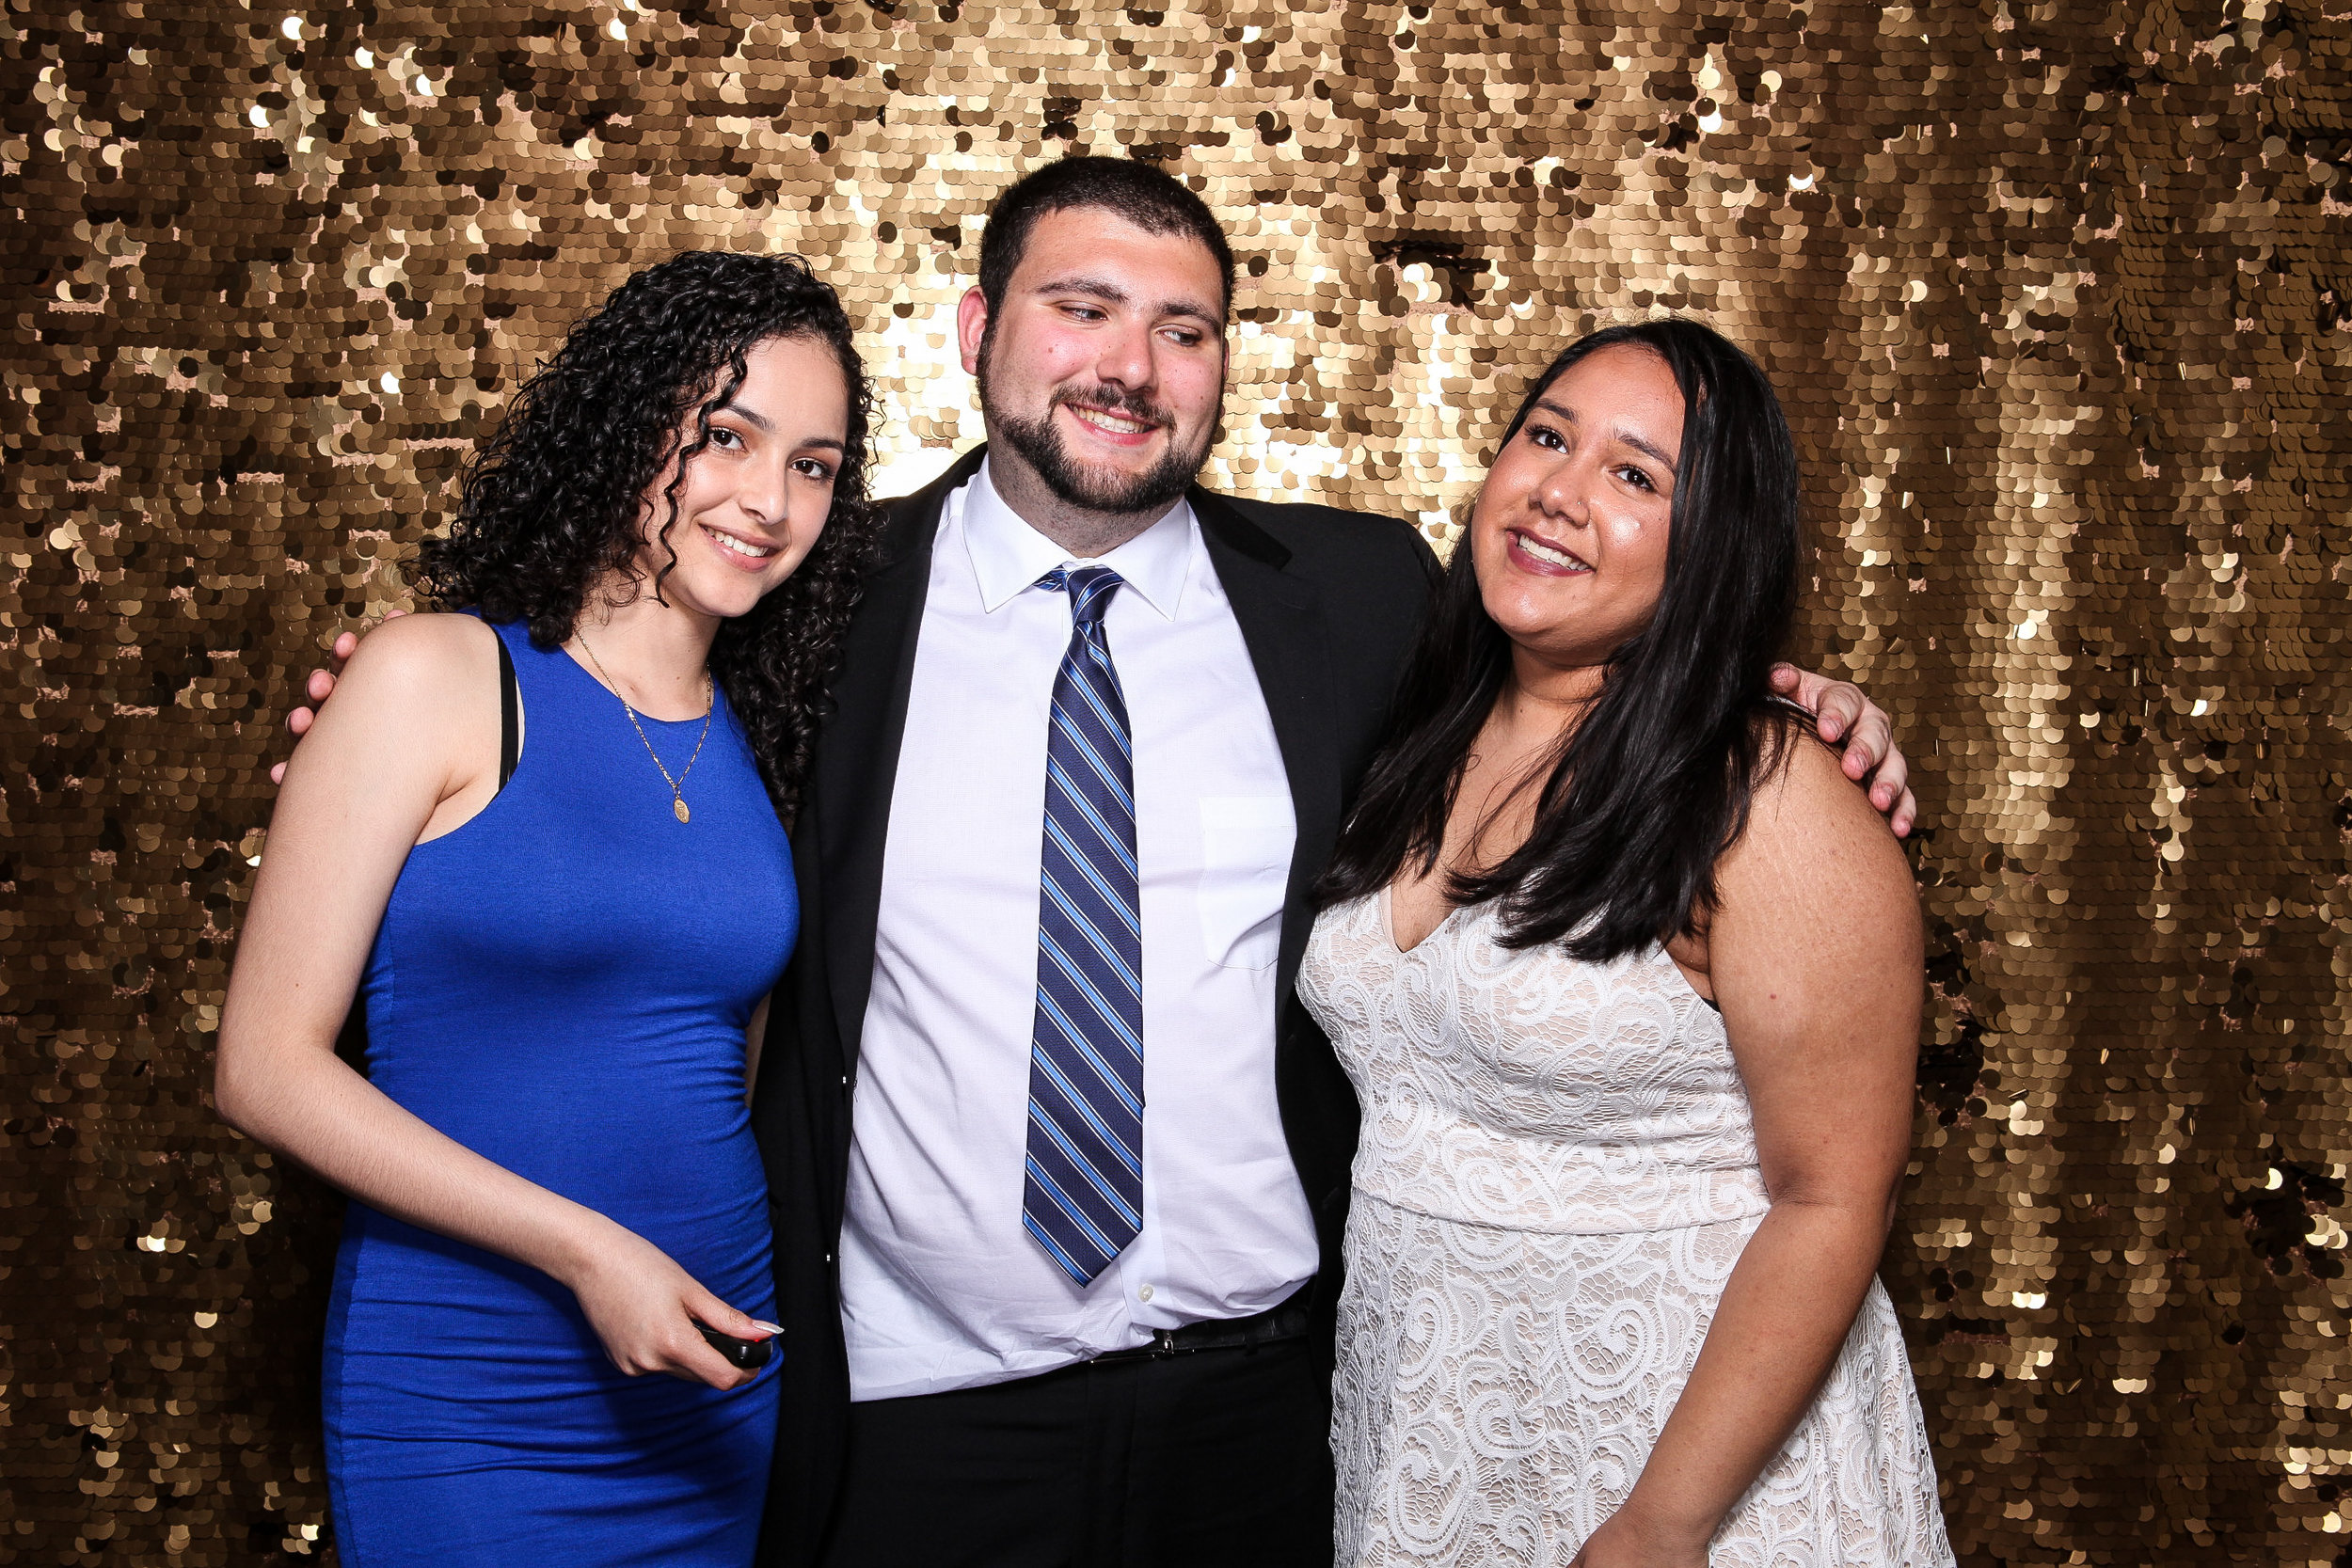 20190503_Adelphi_Senior_Formal-392.jpg